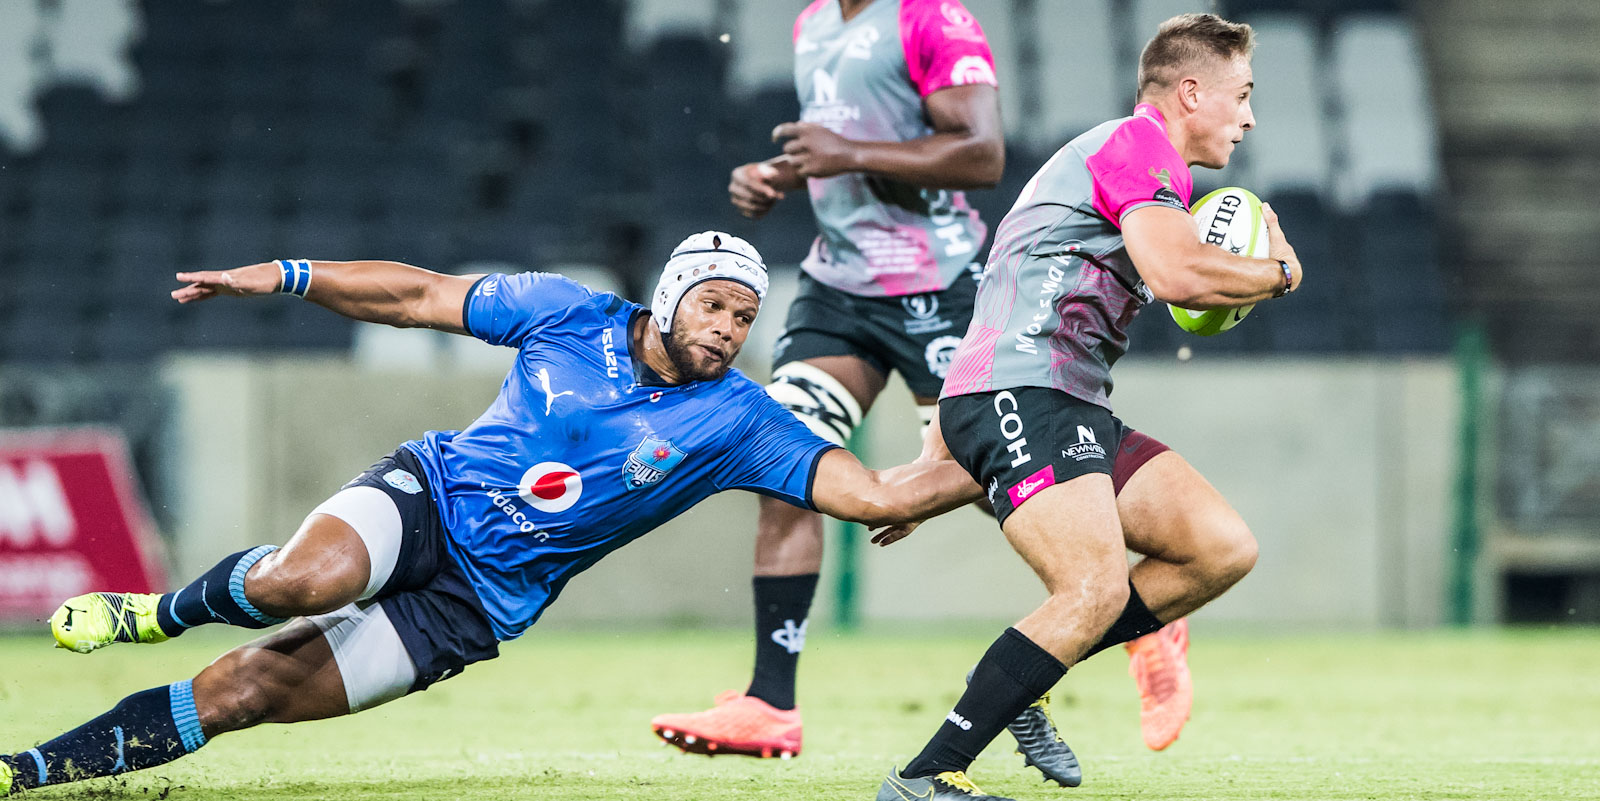 Vodacom Bulls captain Nizaam Carr tries to stop Sebastiaan de Klerk of the New Nation Pumas.